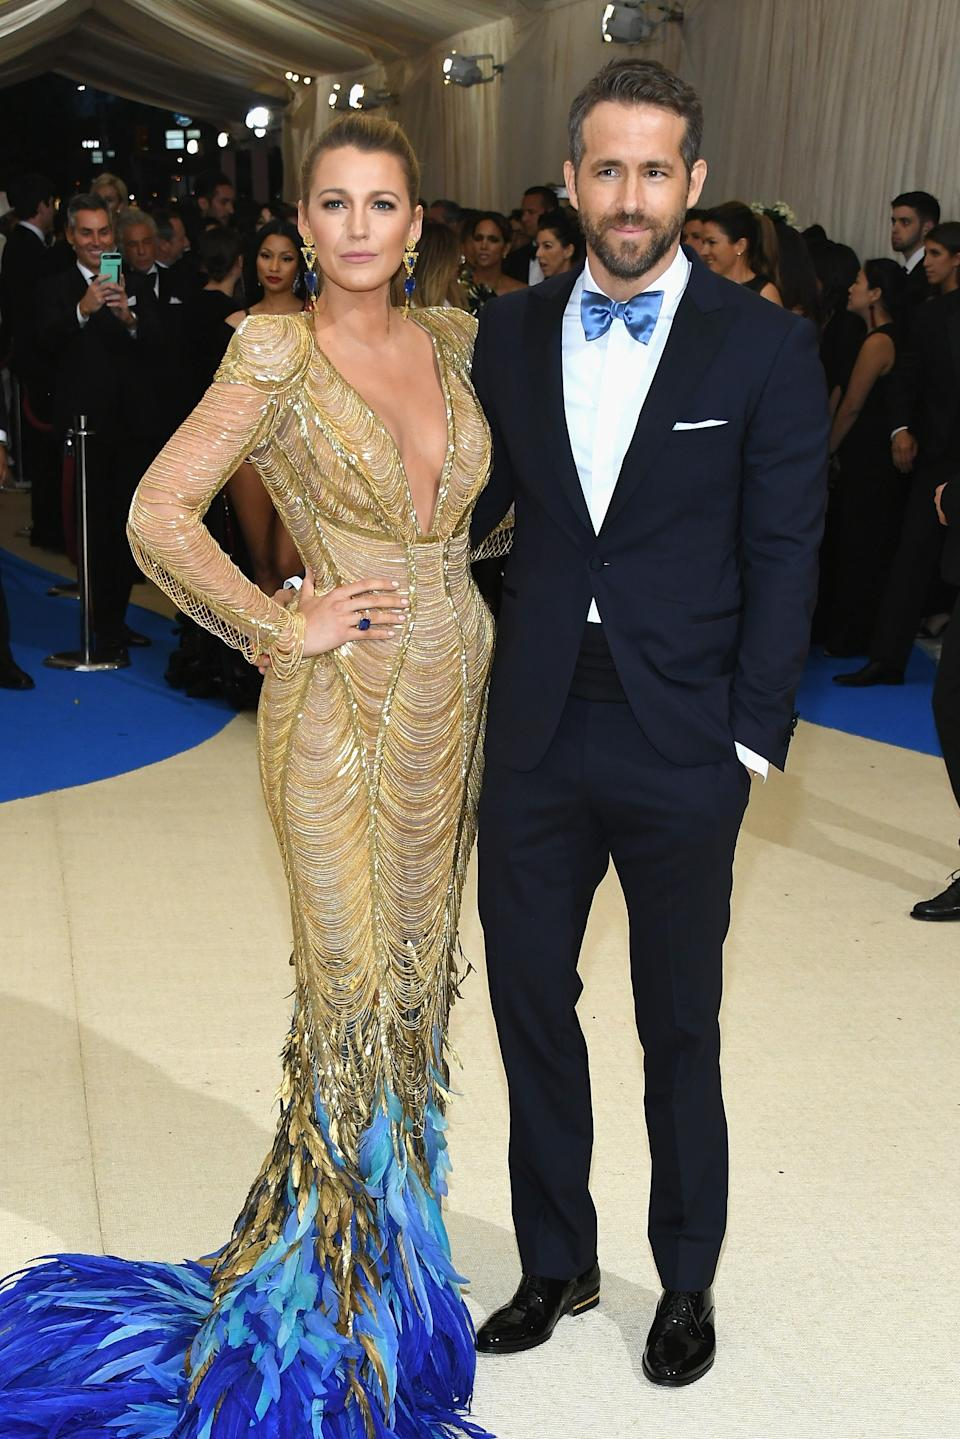 Lively even matched her husband's tie. (Getty Images)